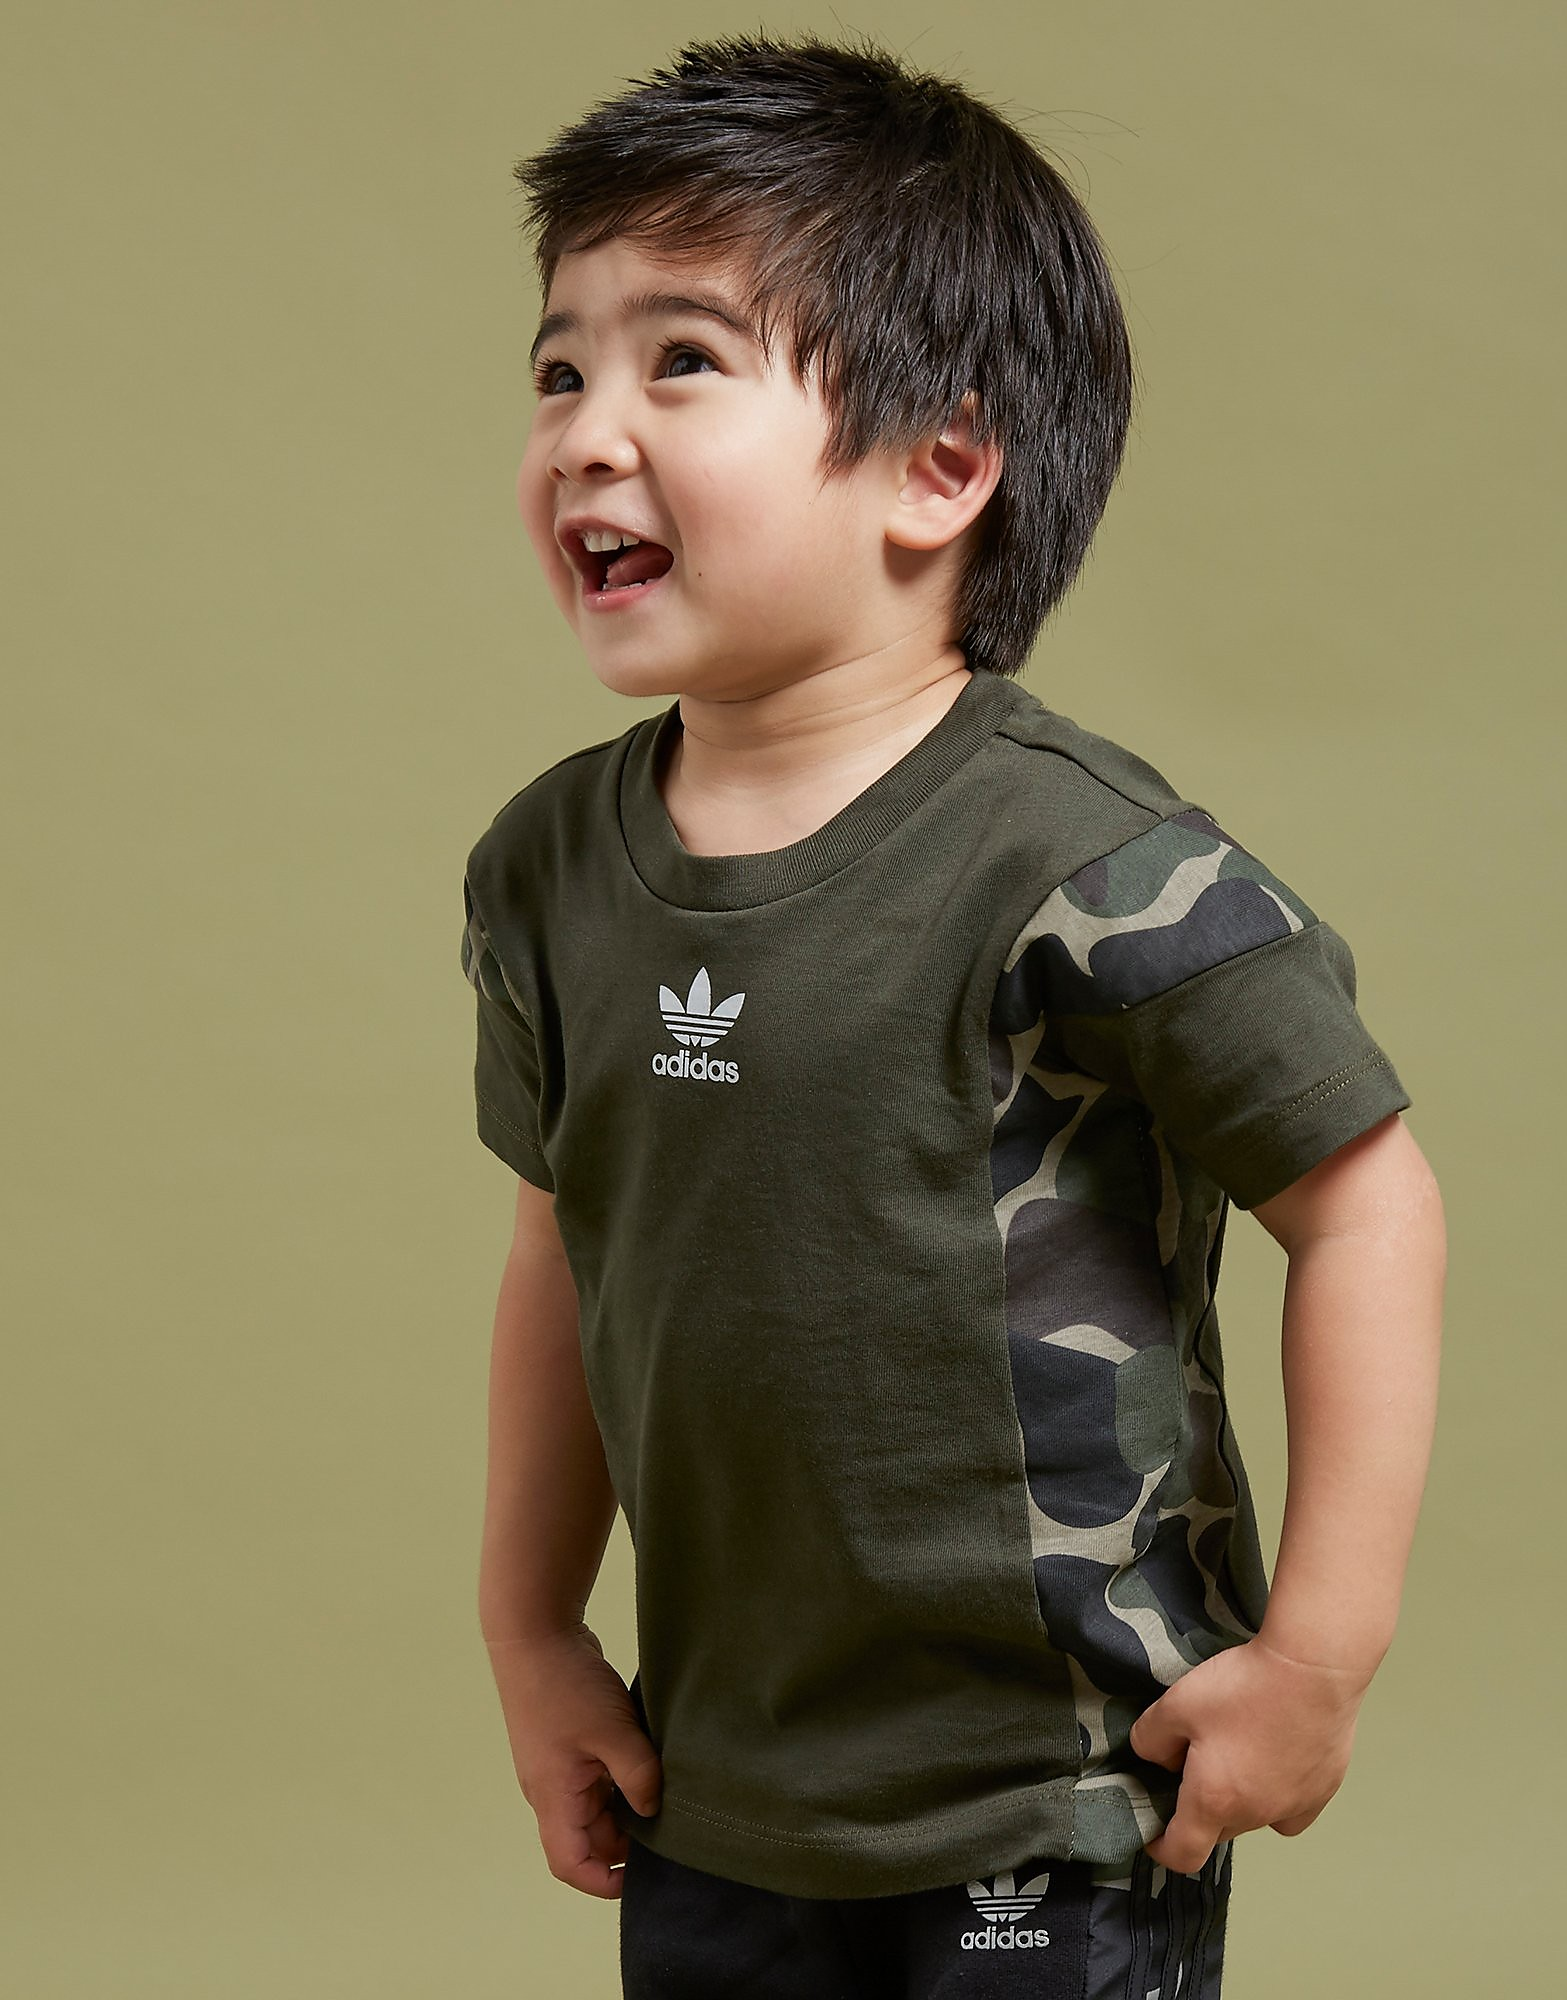 adidas Originals Europe T-Shirt Infant